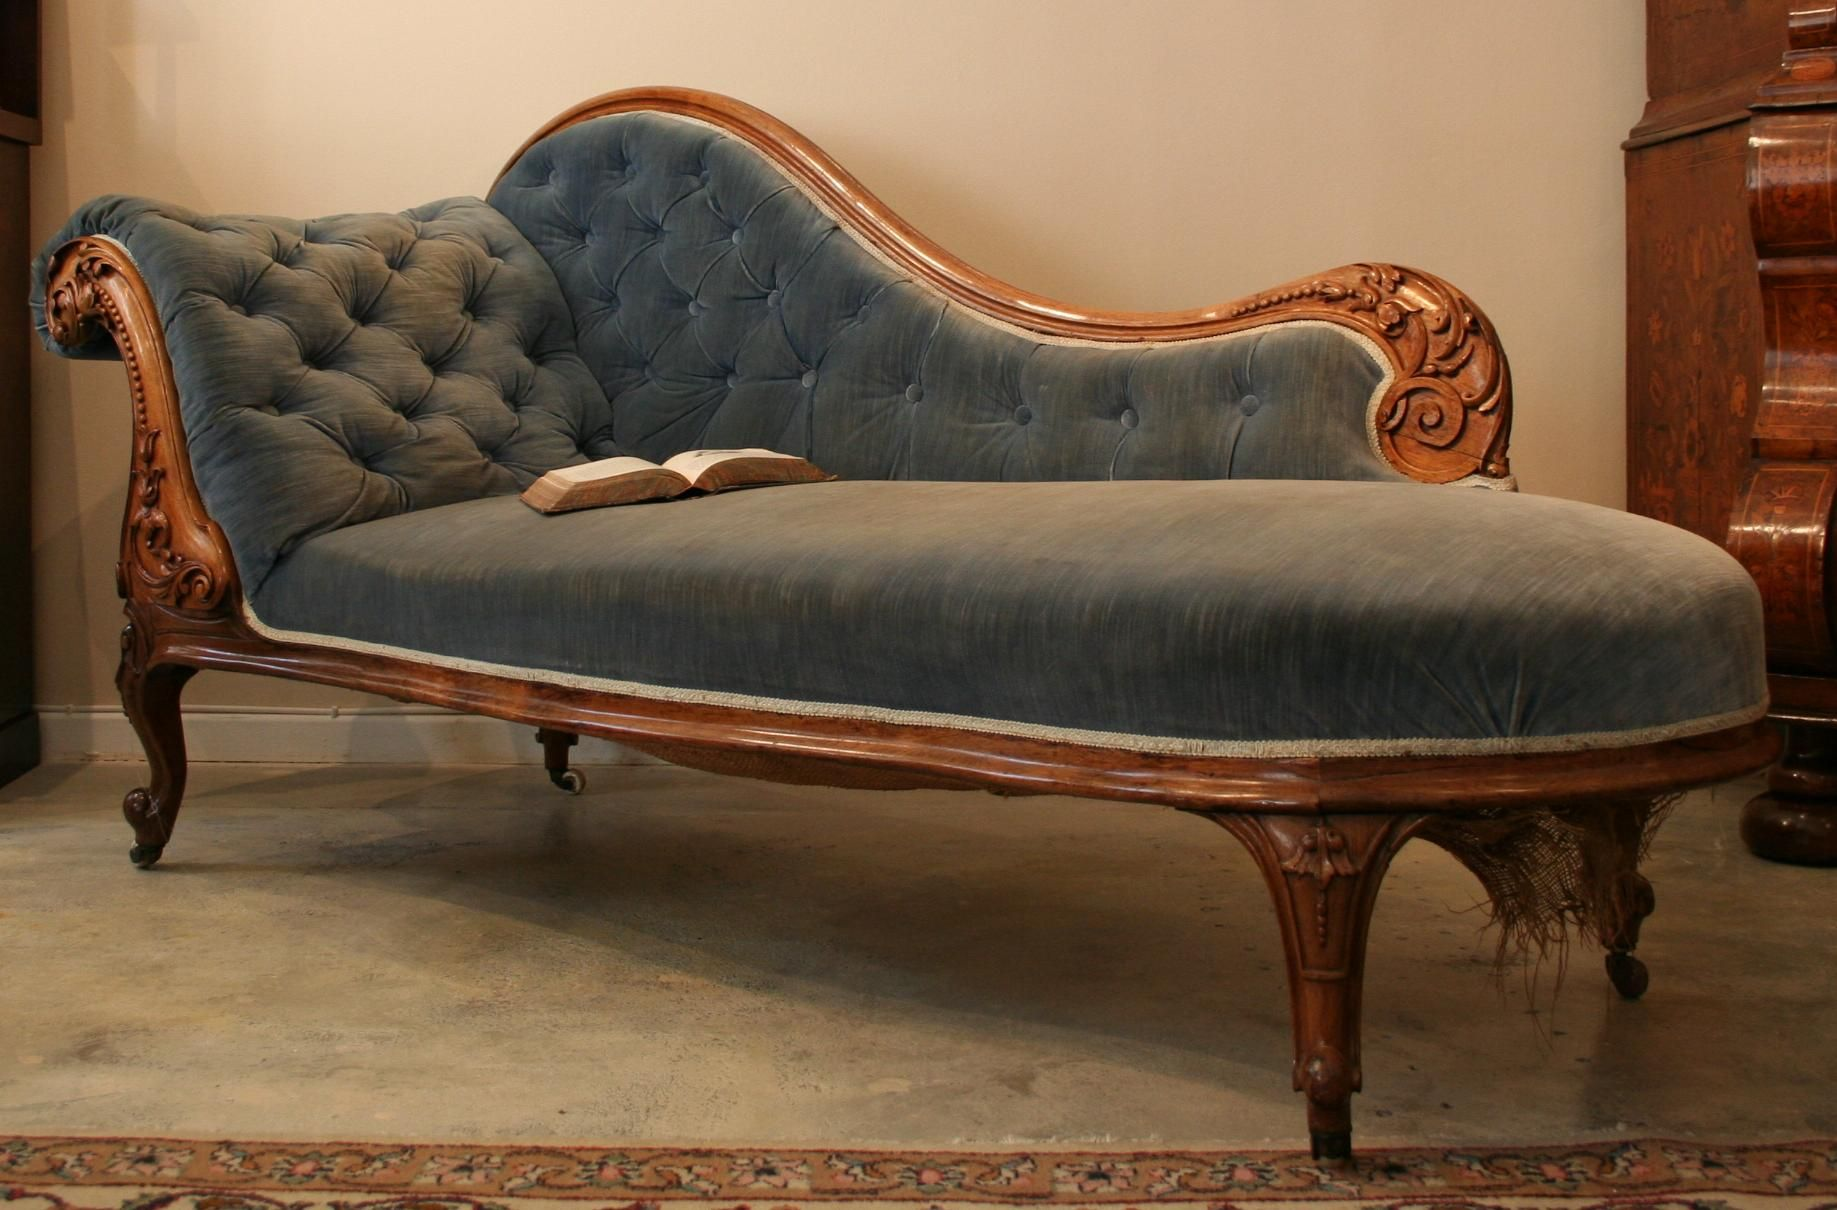 chaise lounges  chaise lounge chairs wooden benches for sale and  - chaise lounges  chaise lounge chairs wooden benches for sale and furniture